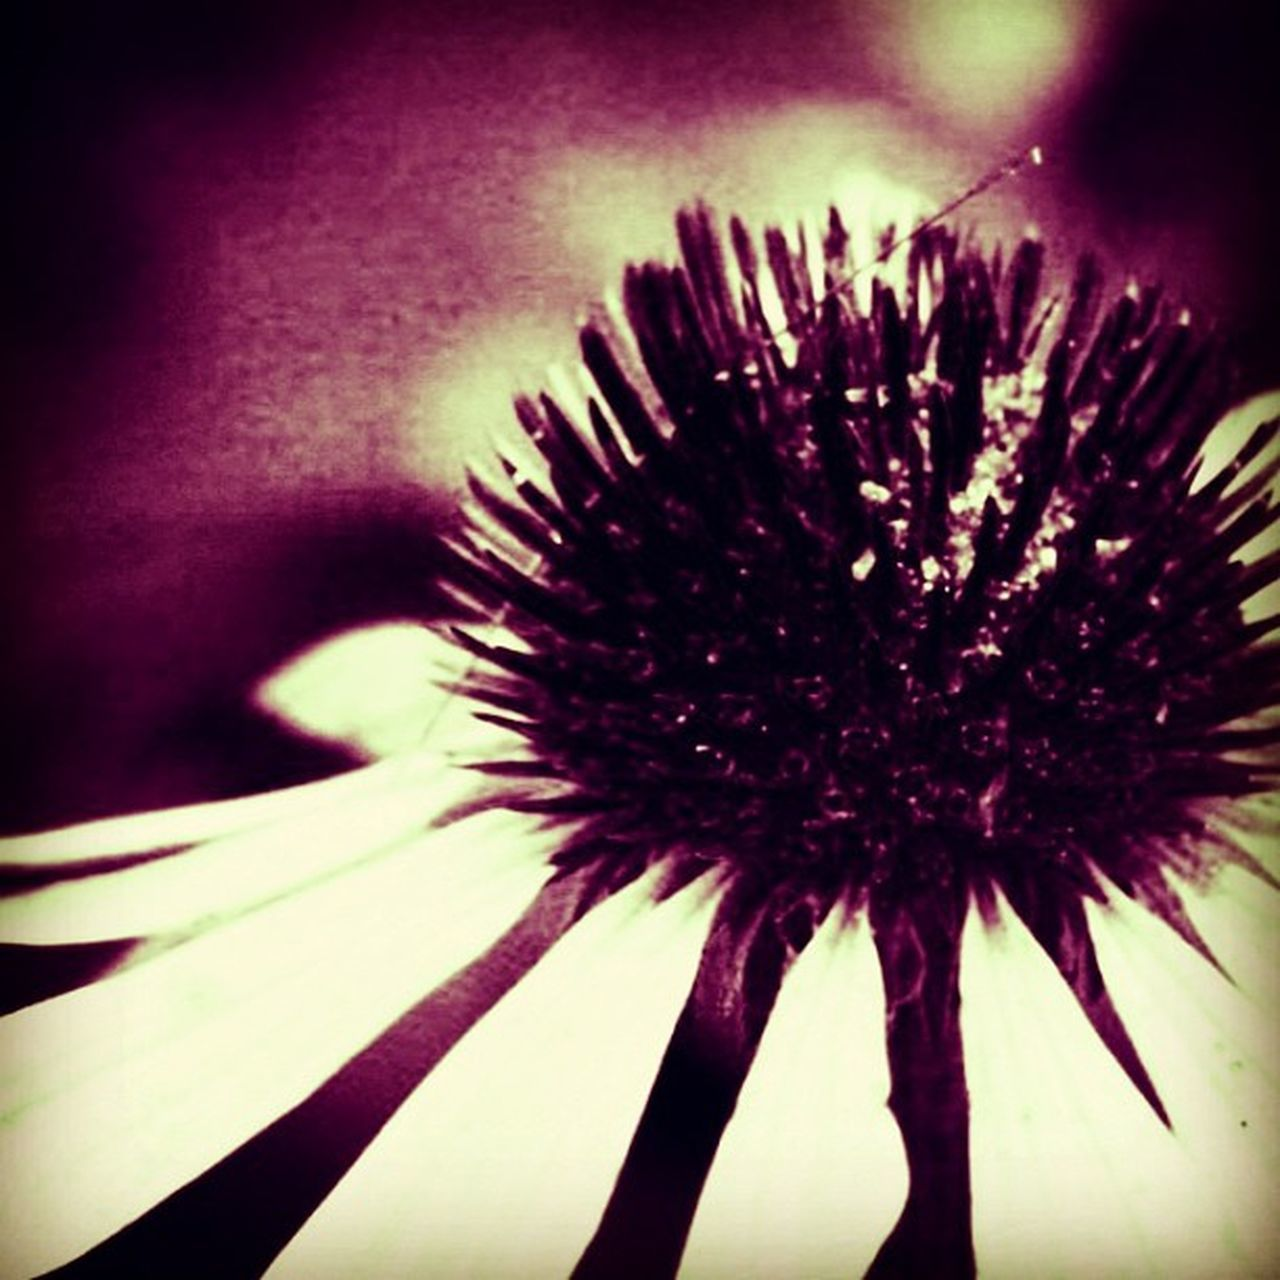 flower, fragility, growth, close-up, flower head, beauty in nature, nature, petal, freshness, coneflower, no people, day, outdoors, eastern purple coneflower